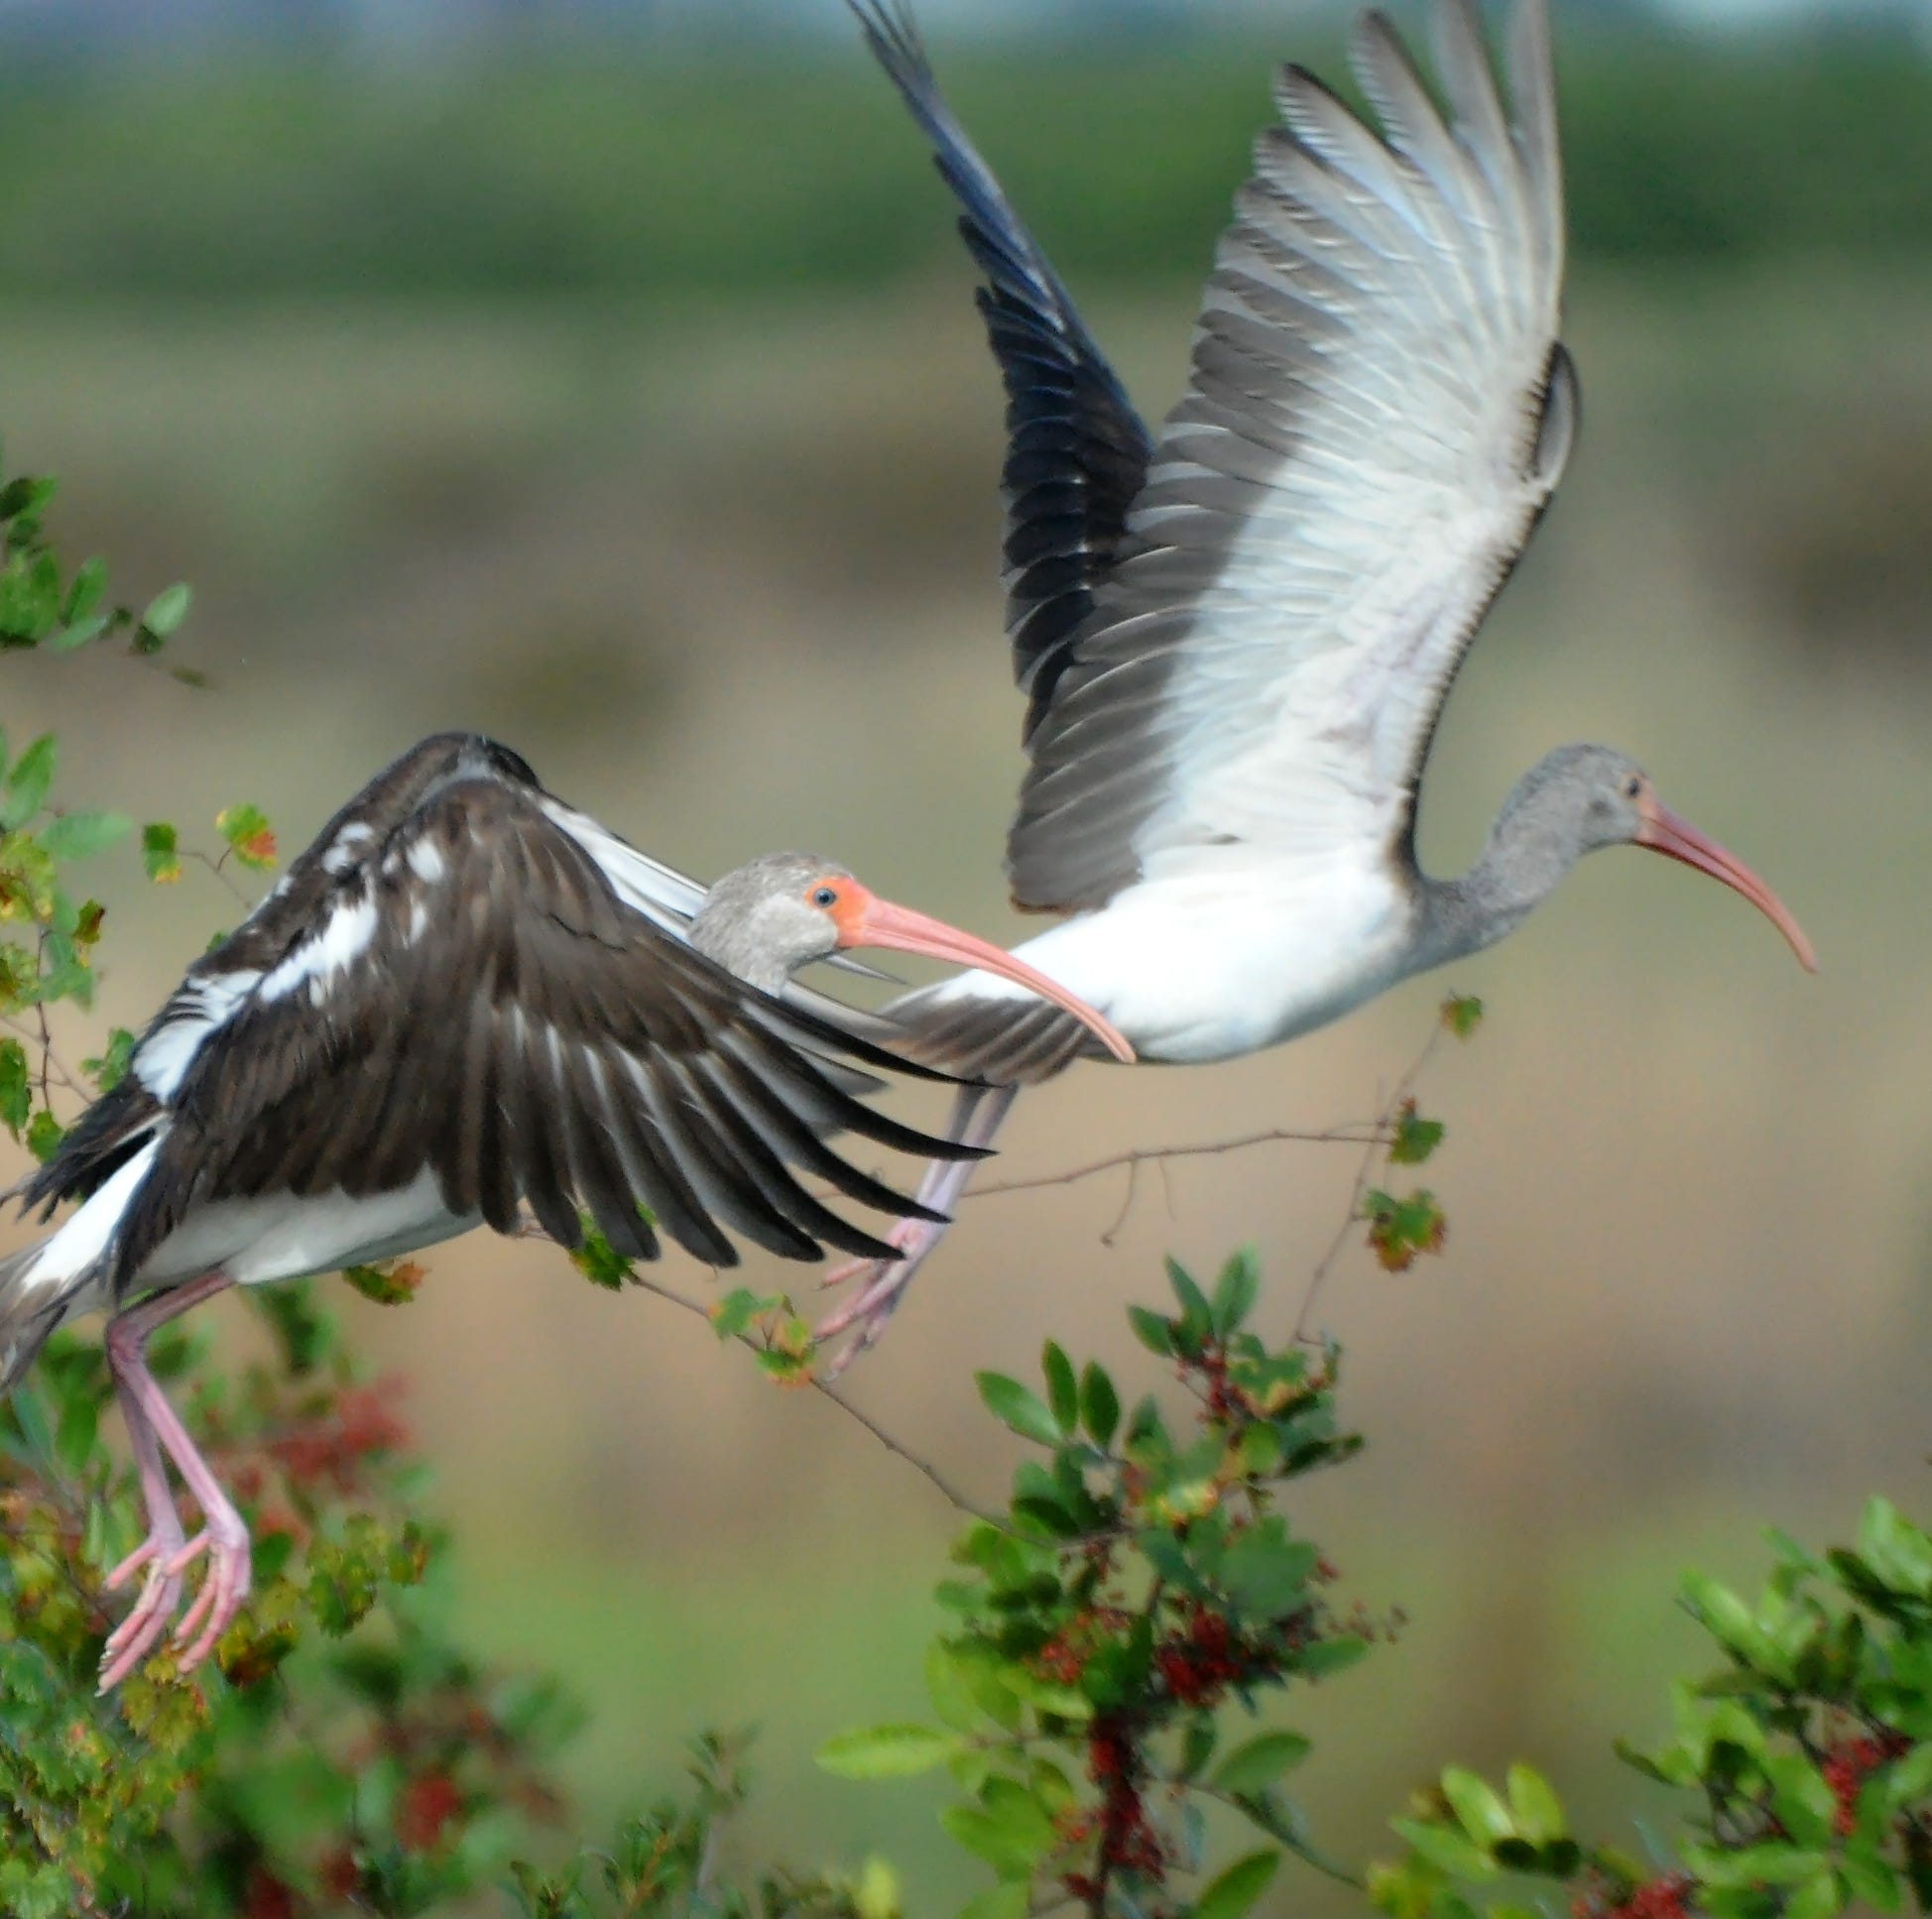 Immature white ibis take flight in Corkscrew Swamp Sanctuary.